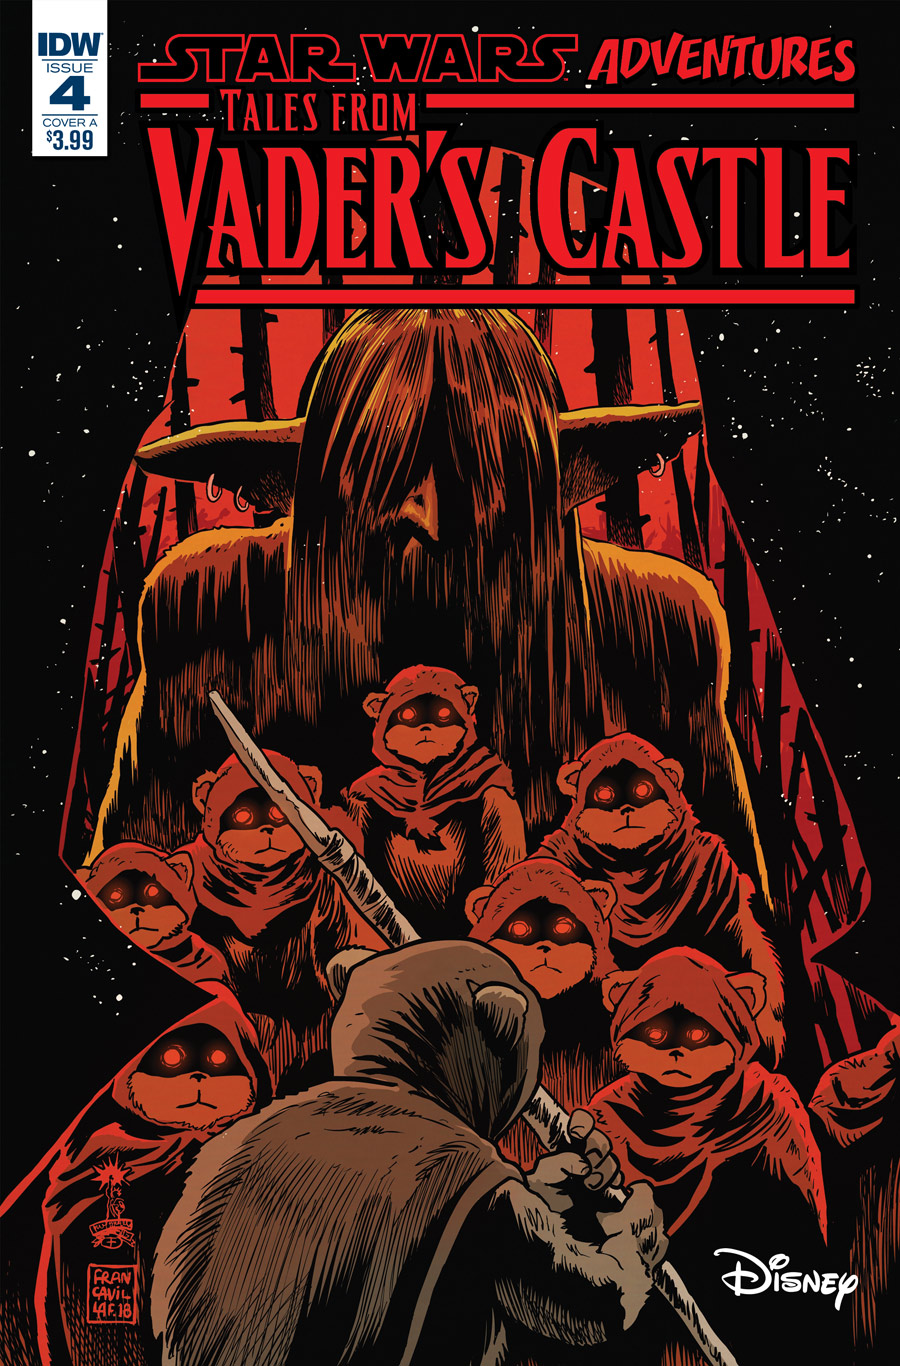 The cover of Tales from Vader's Castle #4.